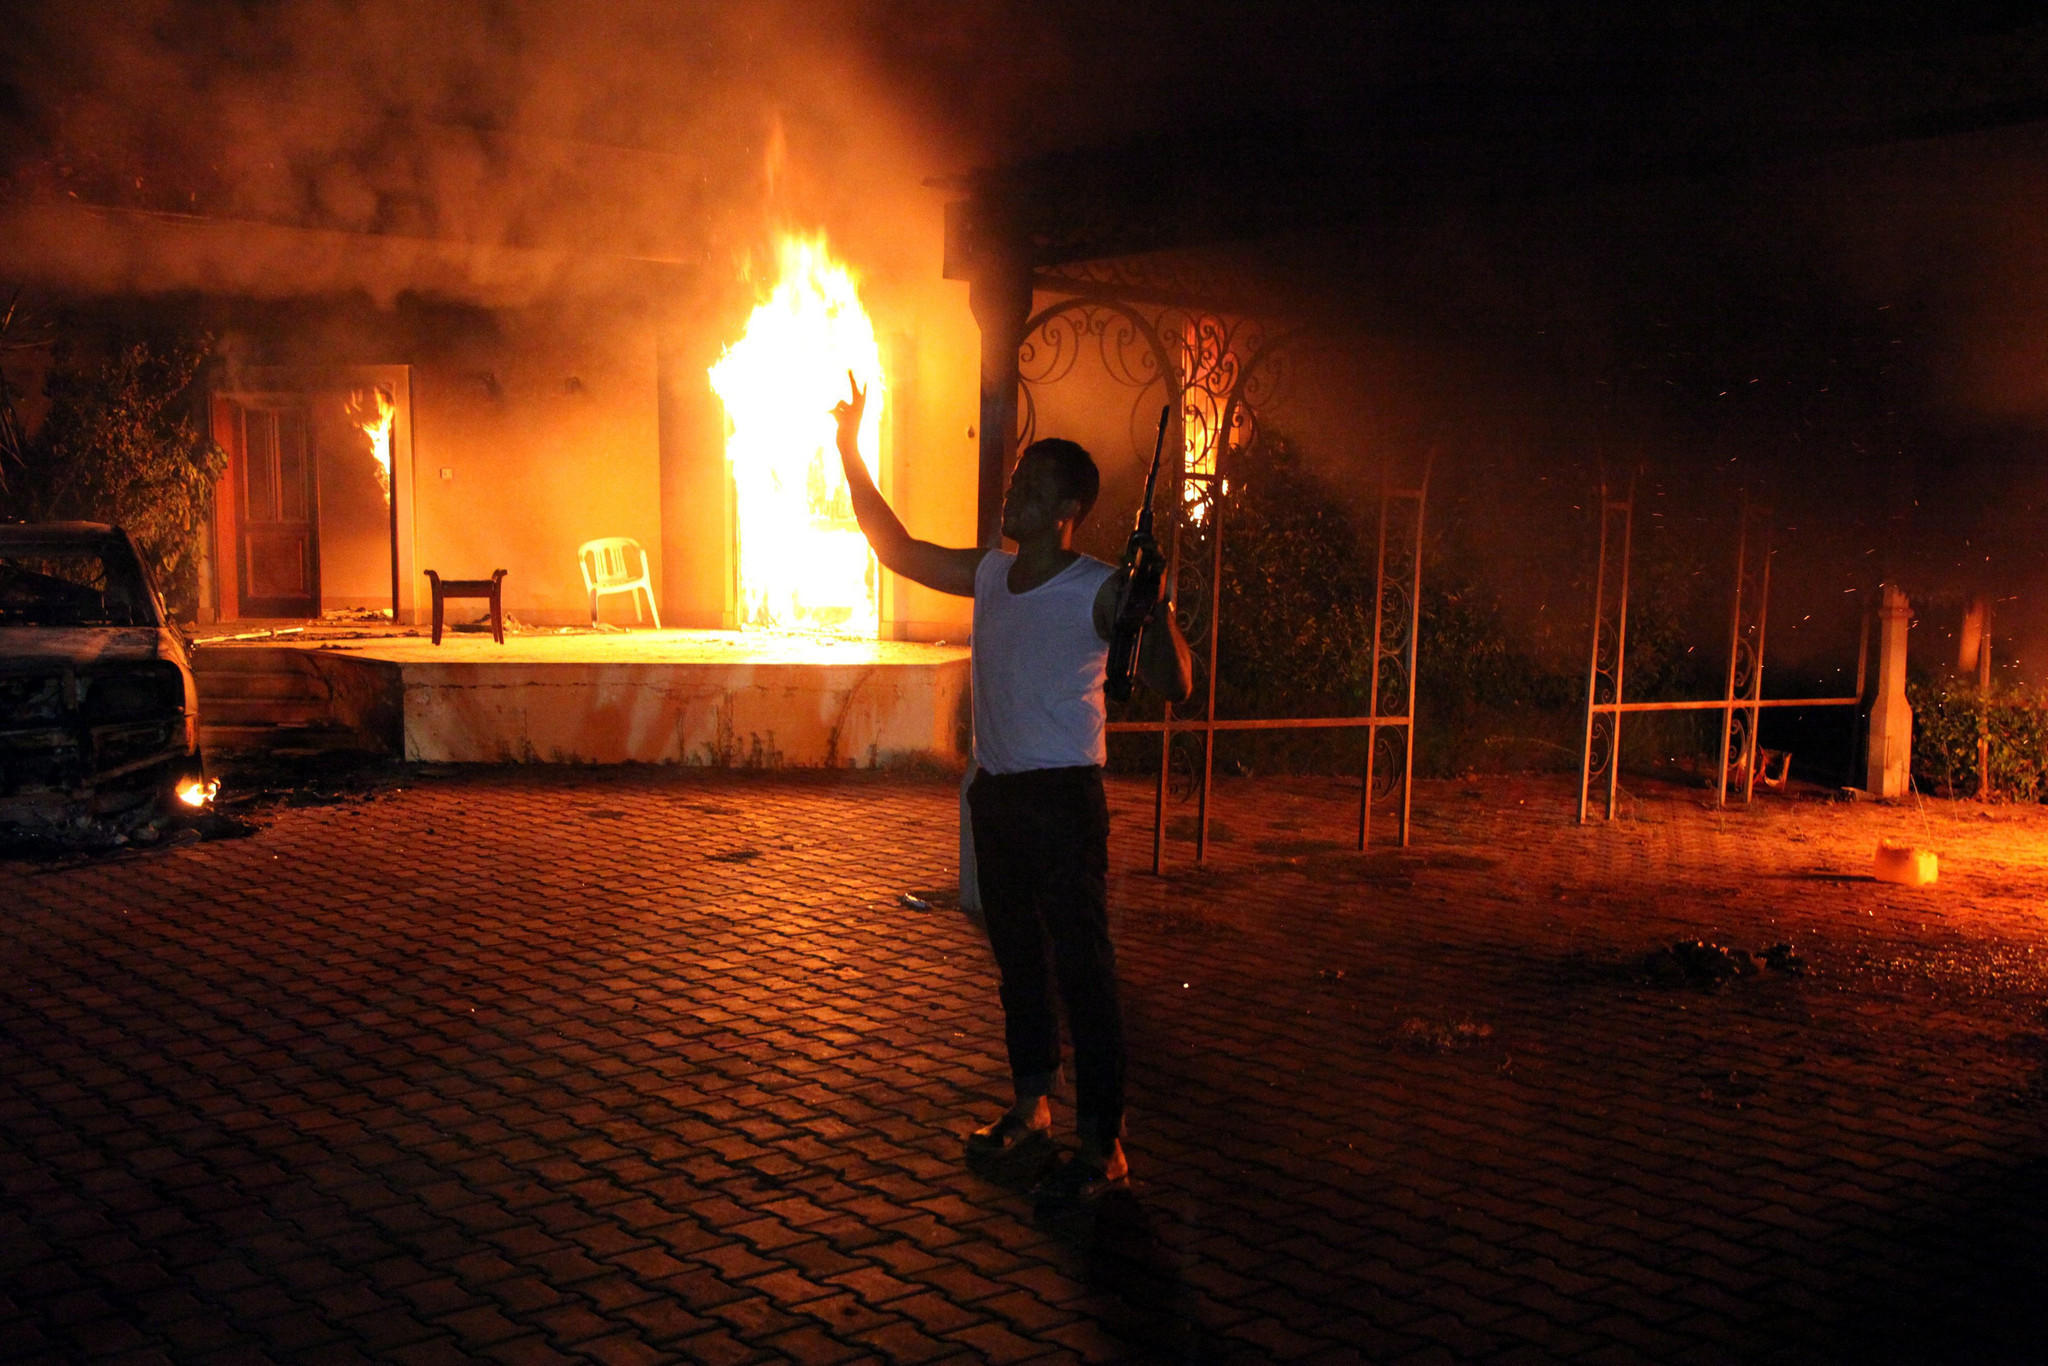 An armed man holds his rifle as he stands next to blazing buildings at the U.S. Consulate in Benghazi in September 2012. The U.S. ambassador to Libya, Chris Stevens, and three others were killed when armed attackers stormed the consulate.